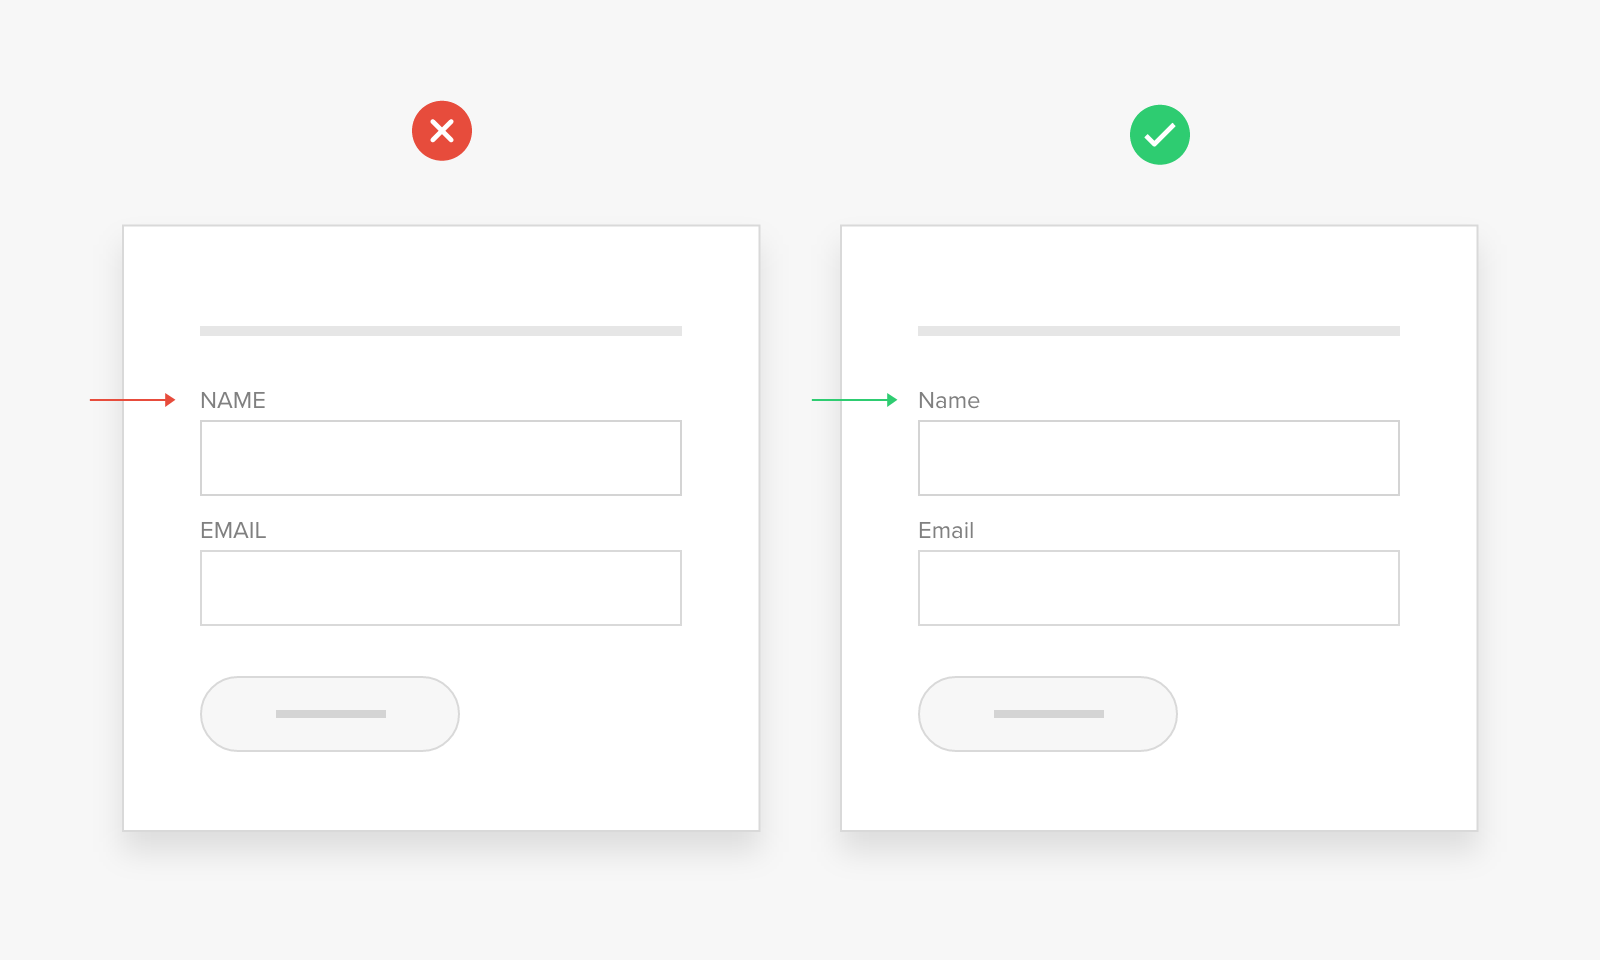 Form best practices: Avoid uppercase labels